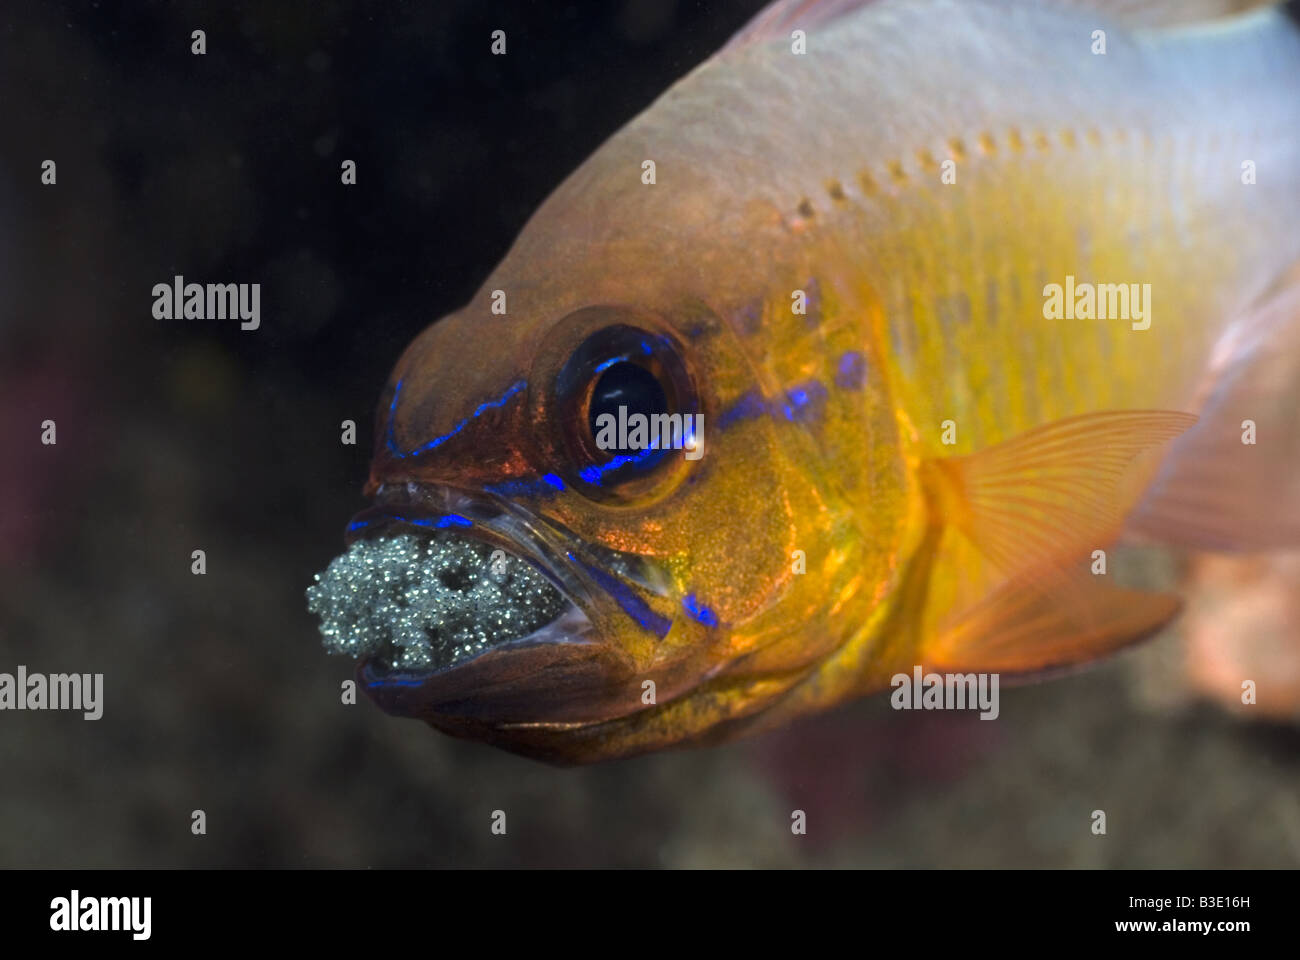 Fish Eggs Hatching Stock Photos & Fish Eggs Hatching Stock